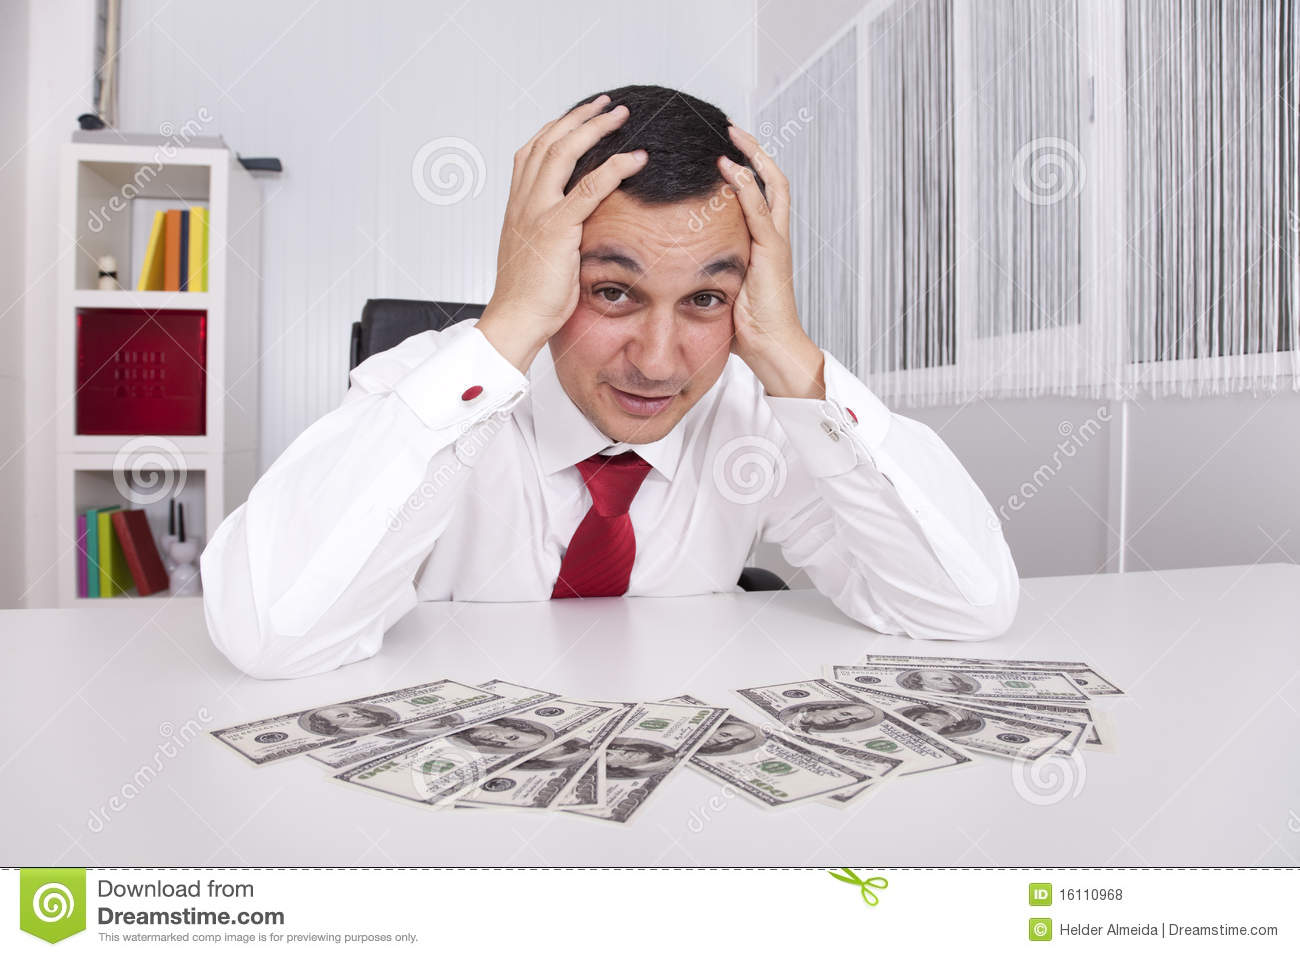 Crazy About Money Royalty Free Stock Photos - Image: 16110968